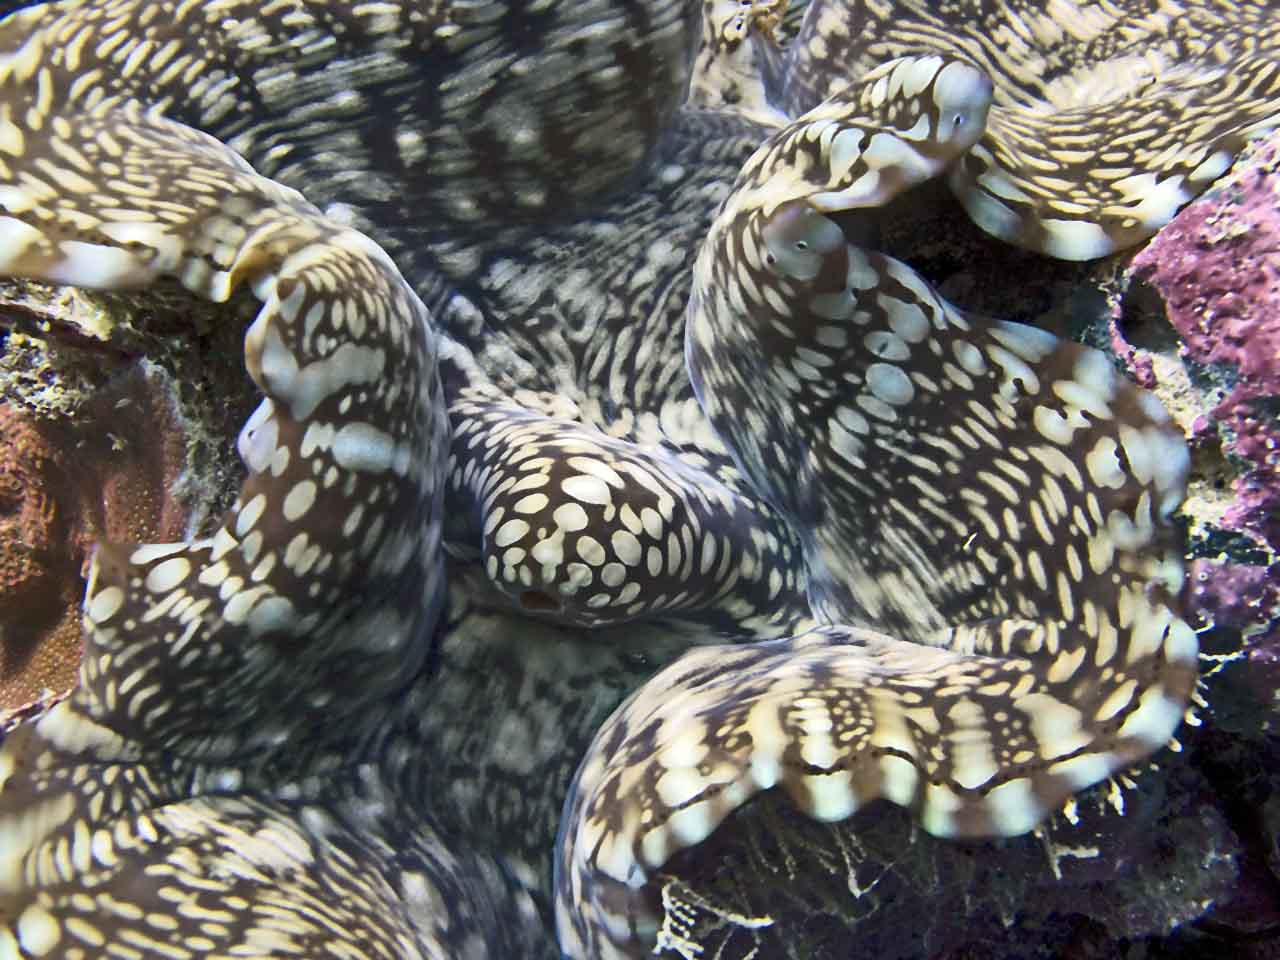 Giant Clam pretends it's a leopard